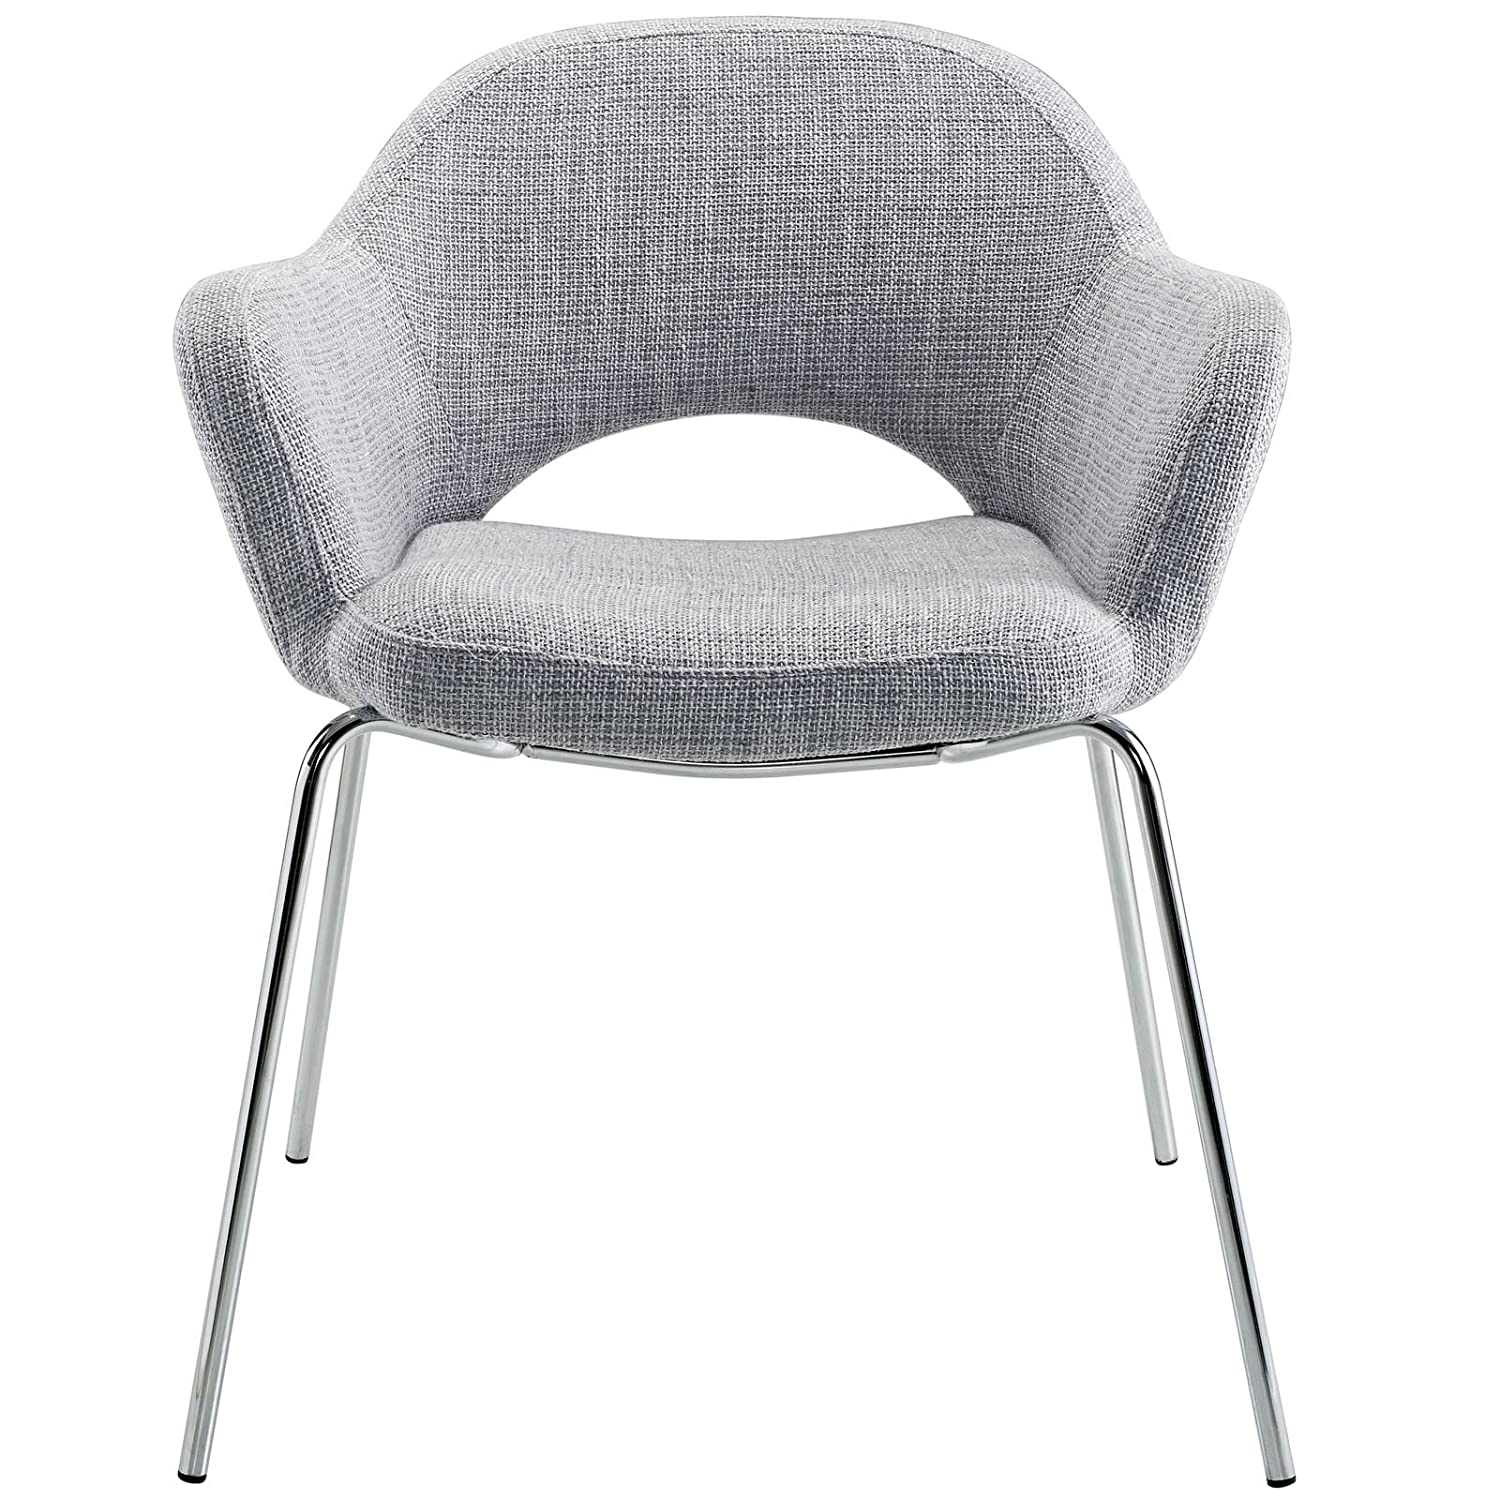 Amazon.com - Modway EEI-623-LGR Cordelia Dining Armchair in Light Gray - Chairs  sc 1 st  Amazon.com & Amazon.com - Modway EEI-623-LGR Cordelia Dining Armchair in Light ...